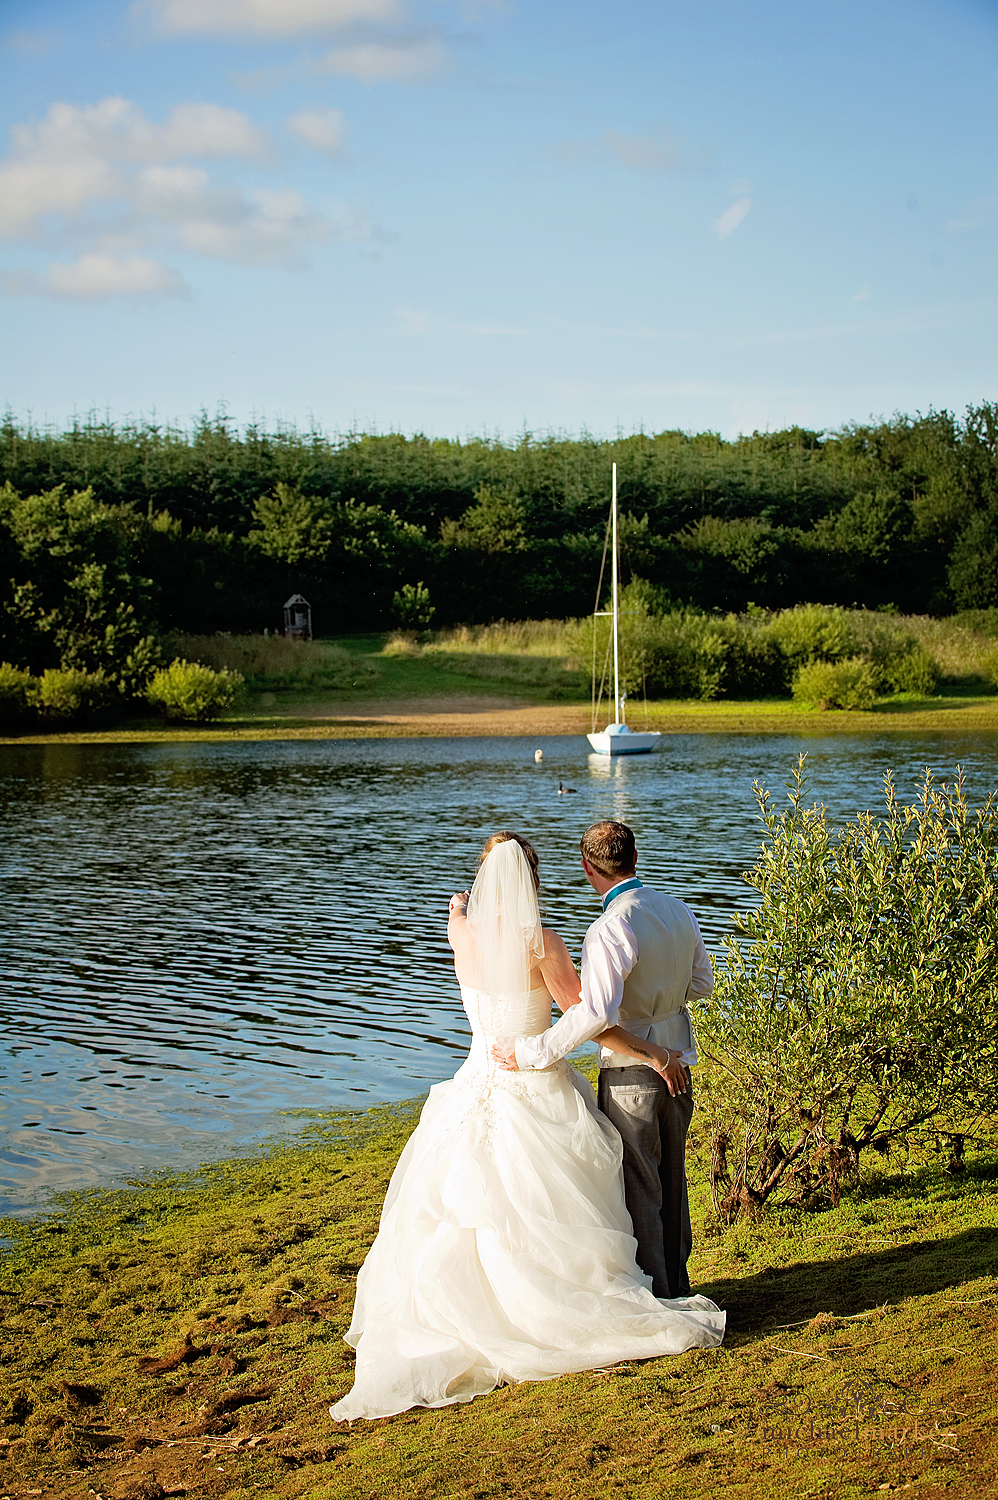 Bride and groom at Devon wedding venue Roadford reservoir